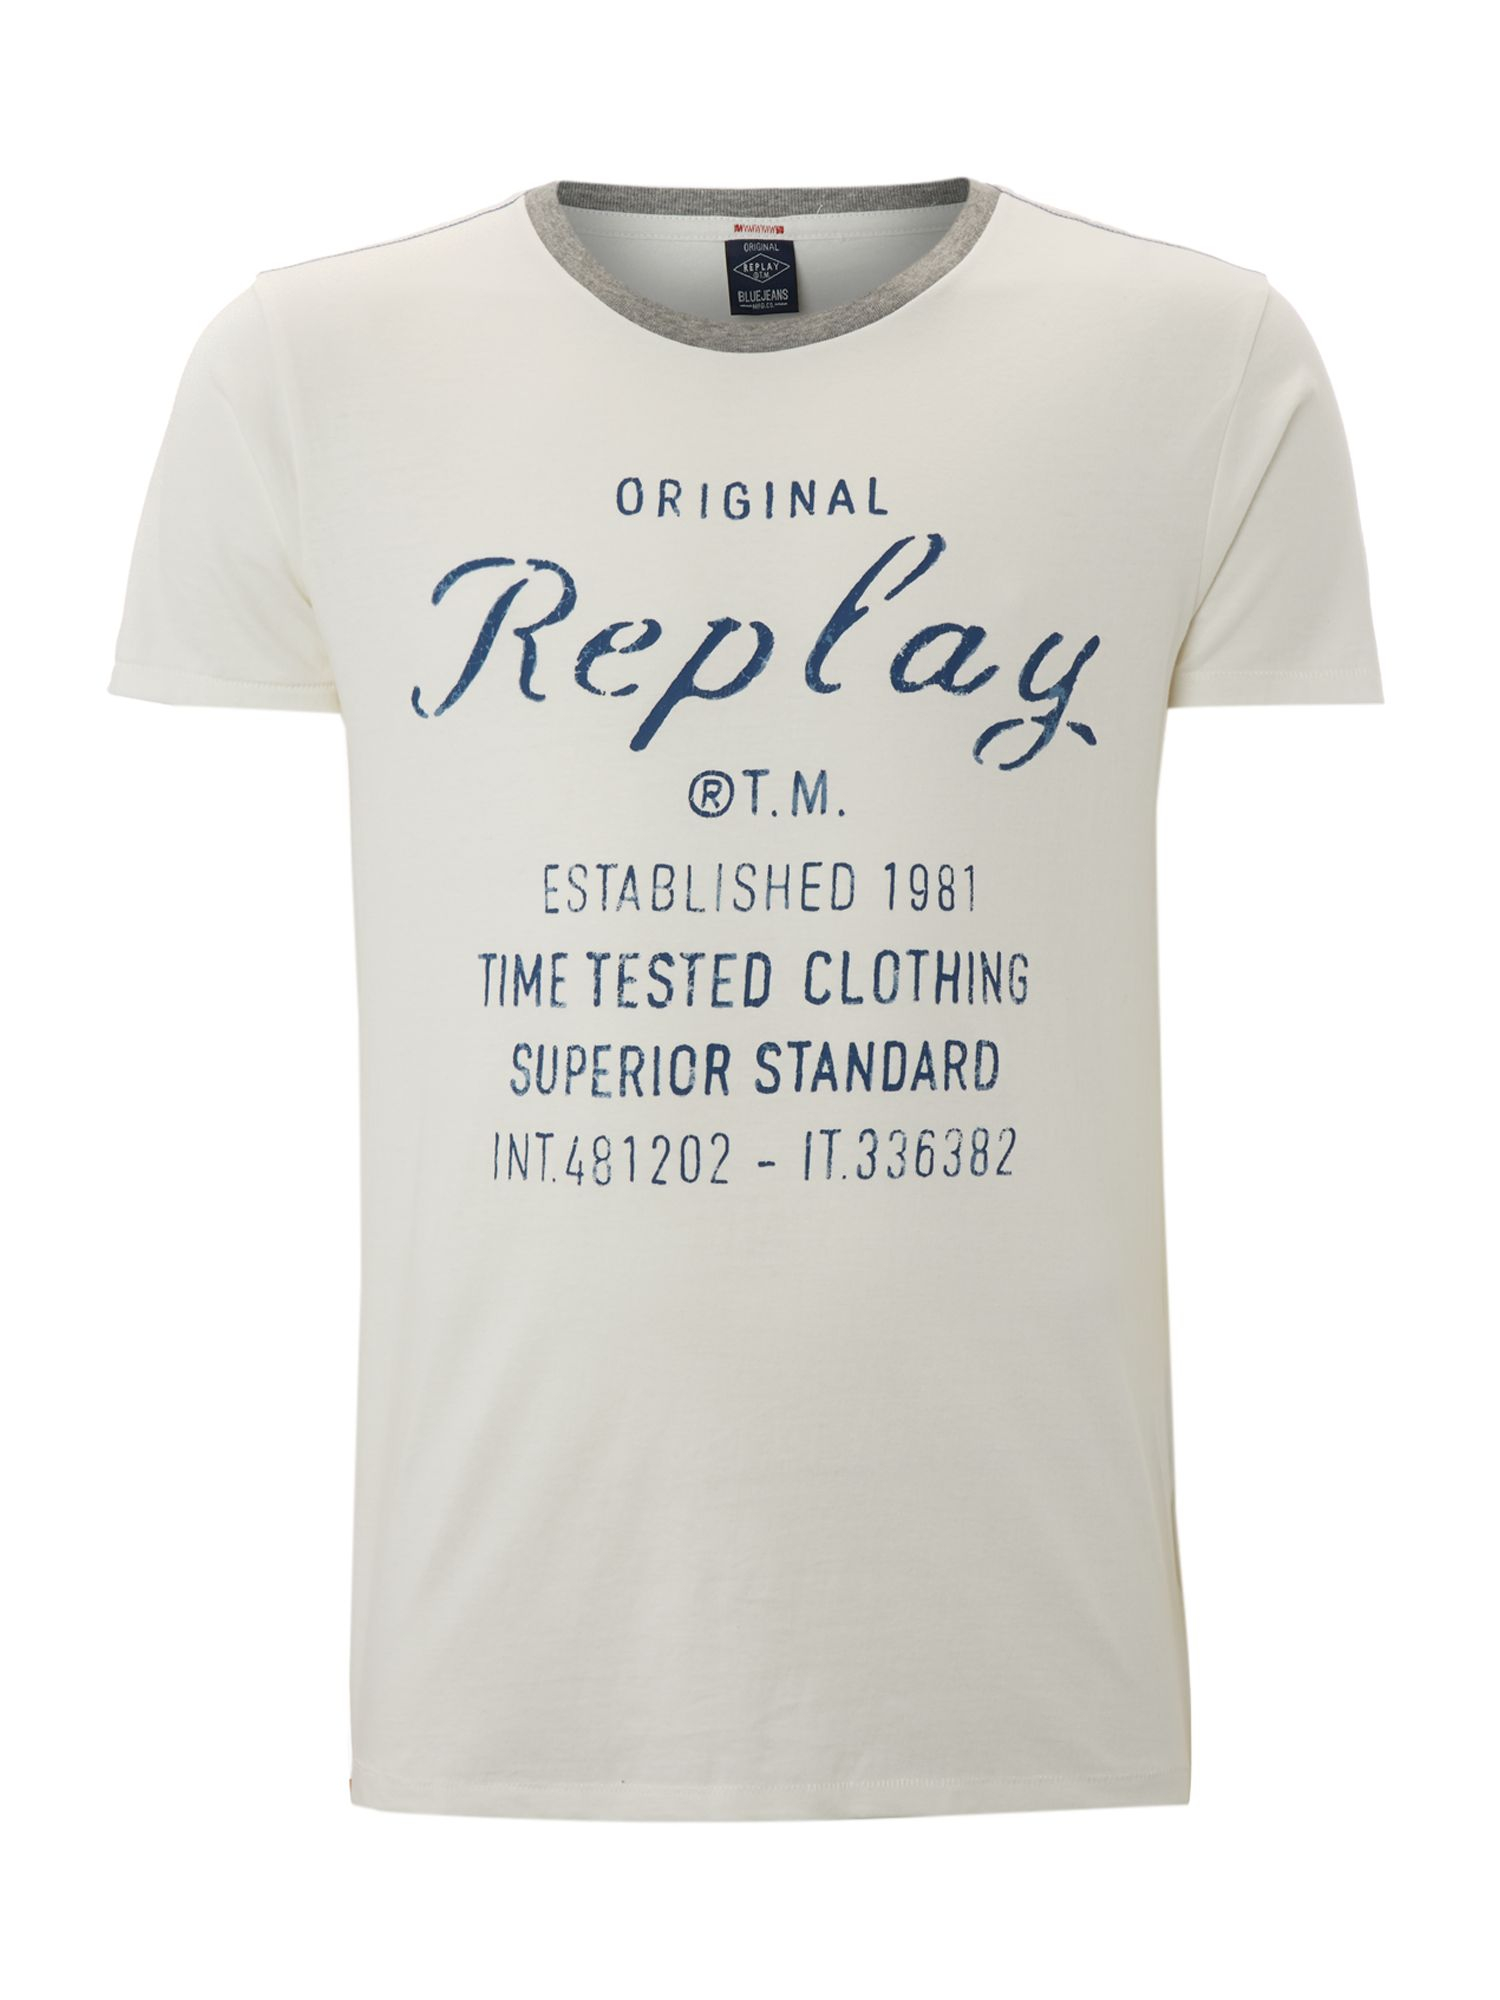 replay round collar basic slim fit jersey tshirt in white for men lyst. Black Bedroom Furniture Sets. Home Design Ideas